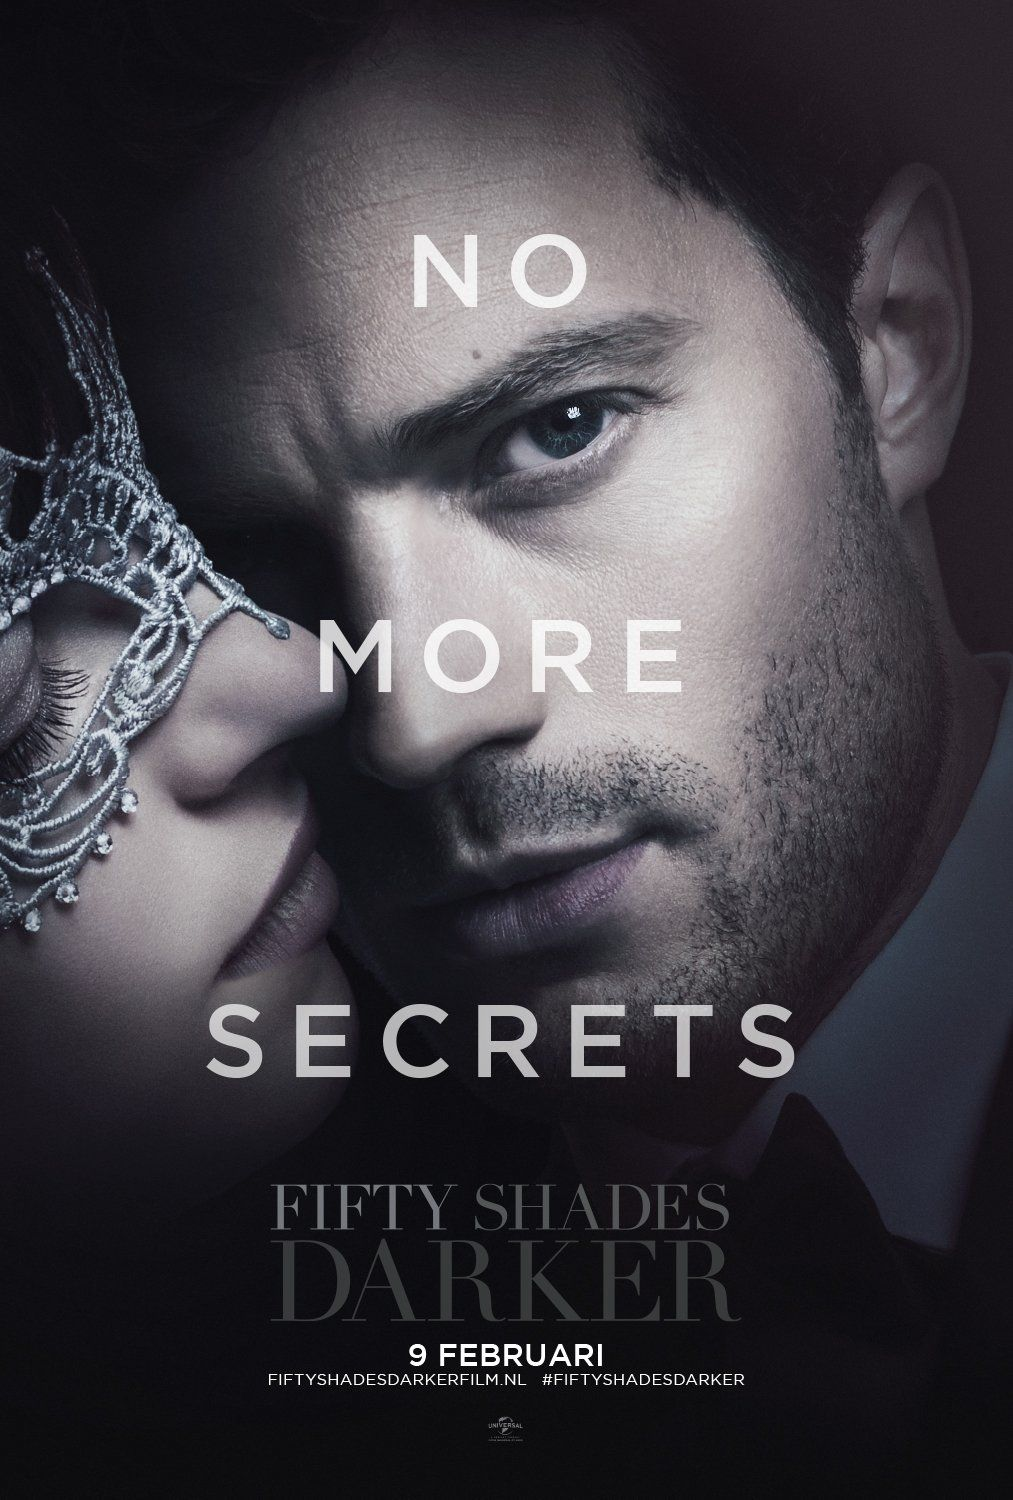 Fifty Shades Nl On Twitter No More Rules And No More Secrets Fiftyshadesdarker Post Fifty Shades Darker Movie Fifty Shades Darker Poster 50 Shades Darker